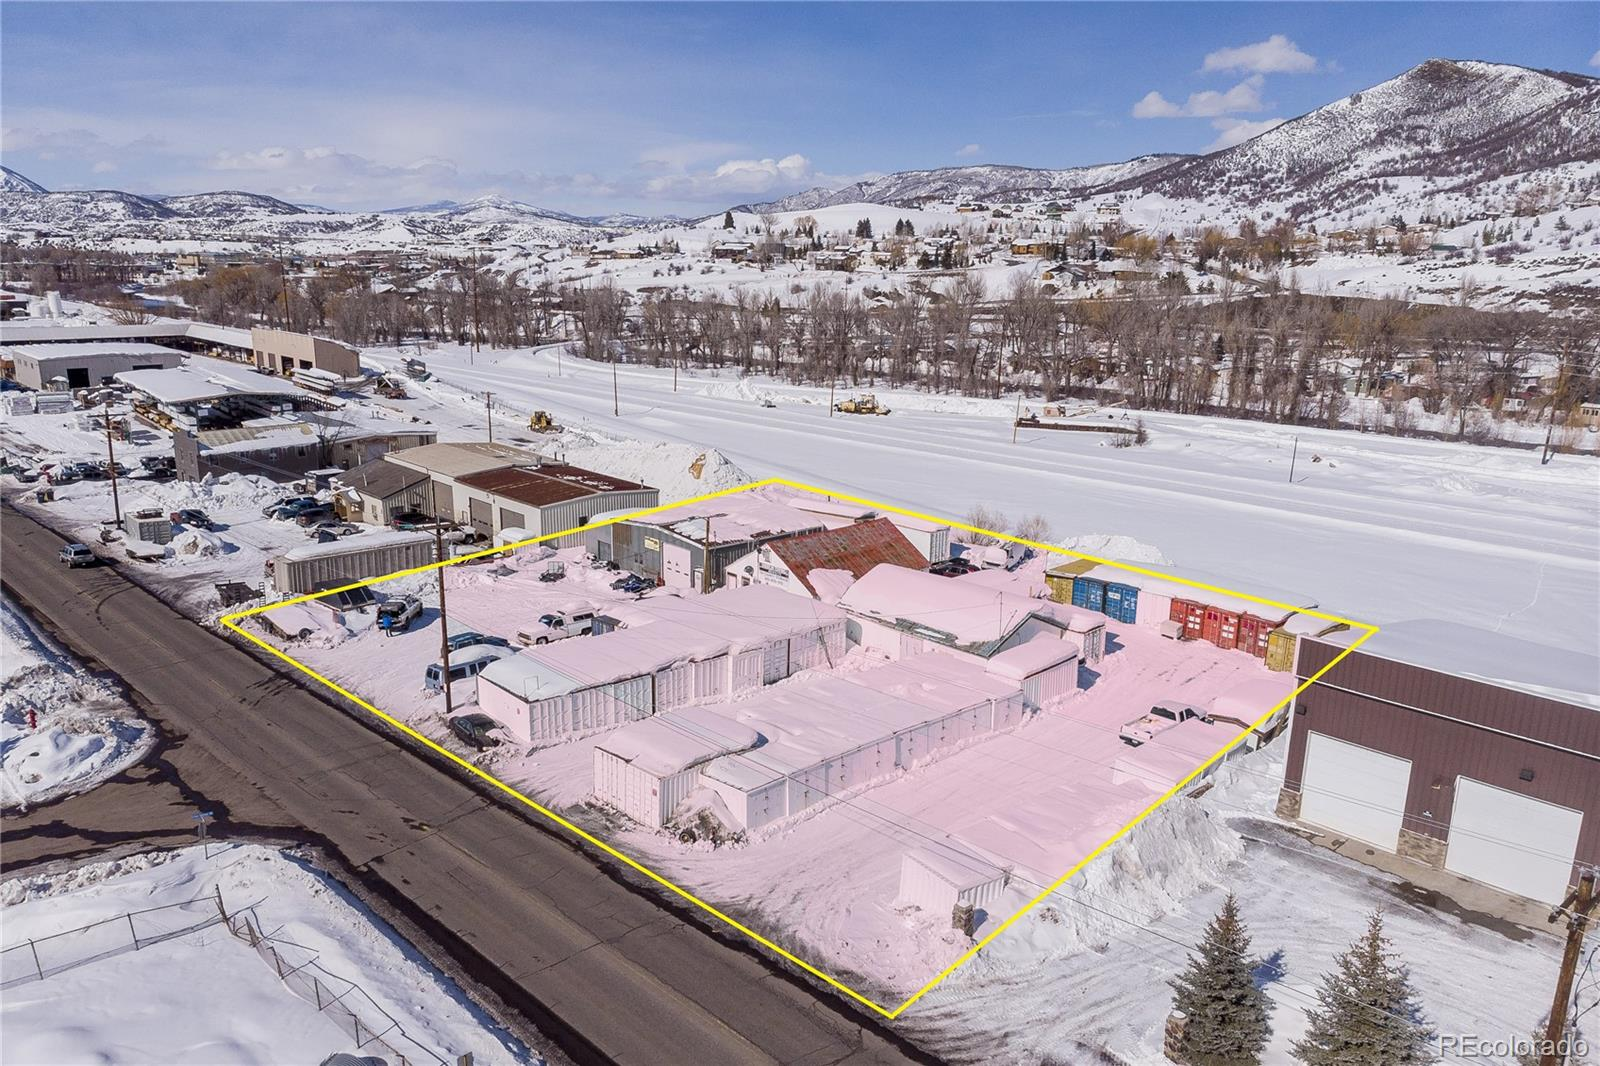 PRICED TO SELL! Commercial property for sale minutes away from downtown Steamboat Springs, consisting of 2 parcels totaling 0.58 acres. Existing uses for the property include a motorcycle shop and two warehouses. Current rental income from existing tenants is $2500/month. Seller is currently in the process of removing the PODS business. Property is zoned industrial and offers several different possibilities, some of which include maintaining the existing businesses/tenants, a construction business, office space and live/work use. Don't let this great opportunity pass. Priced below current assessed value.www.SteamboatSpringsCommercial.com